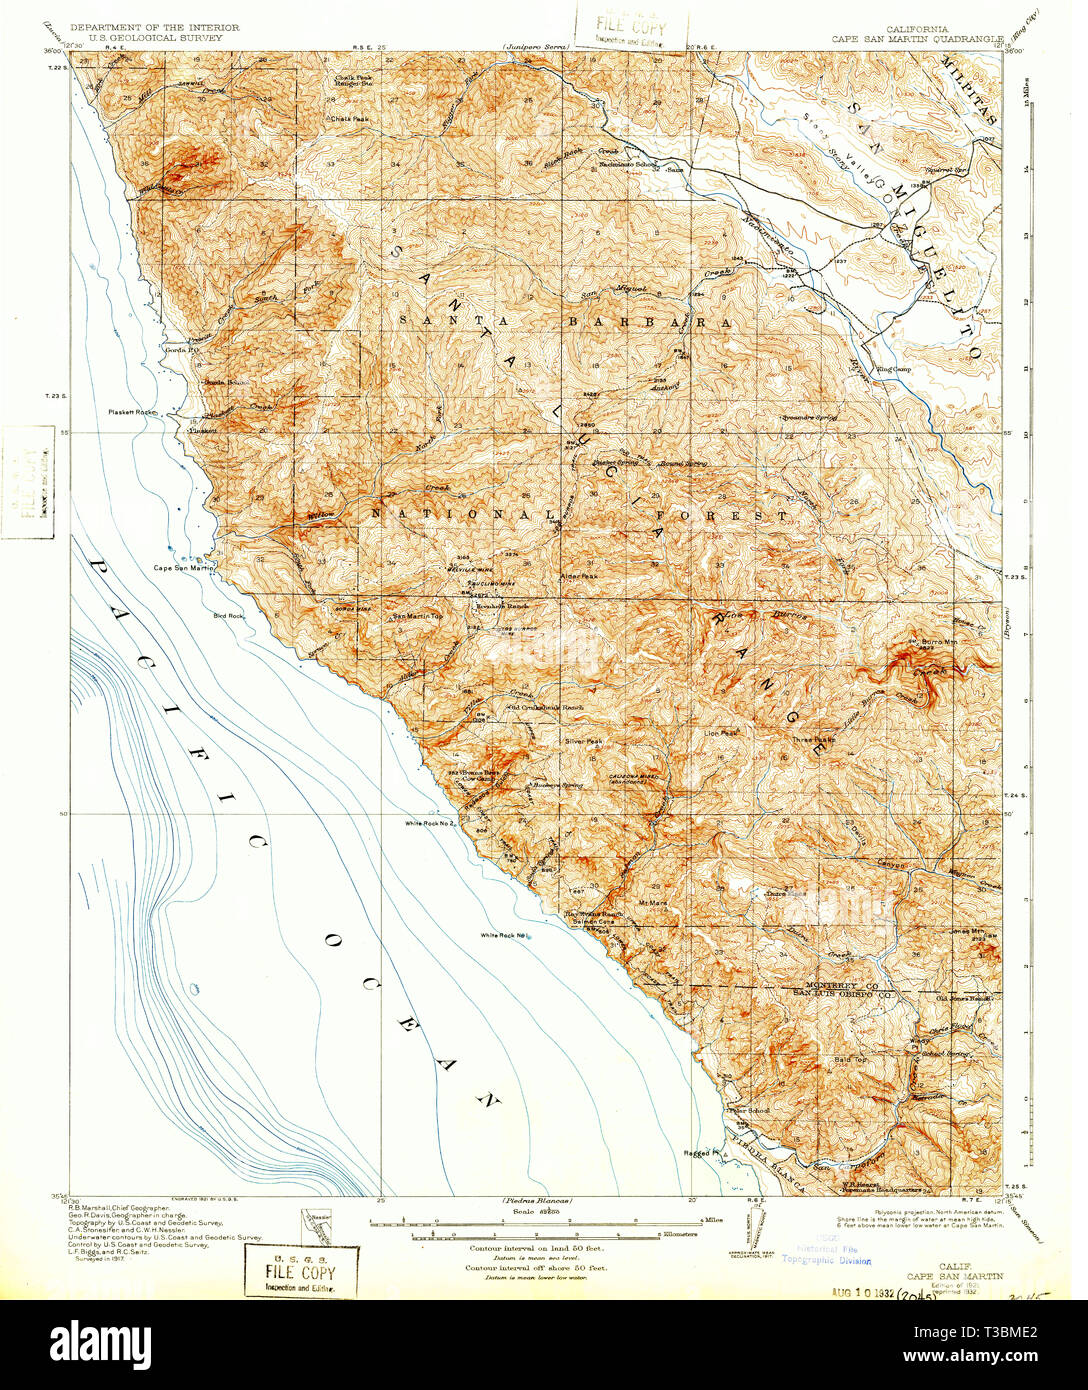 st martin california map Usgs Topo Map California Ca Cape San Martin 297004 1921 62500